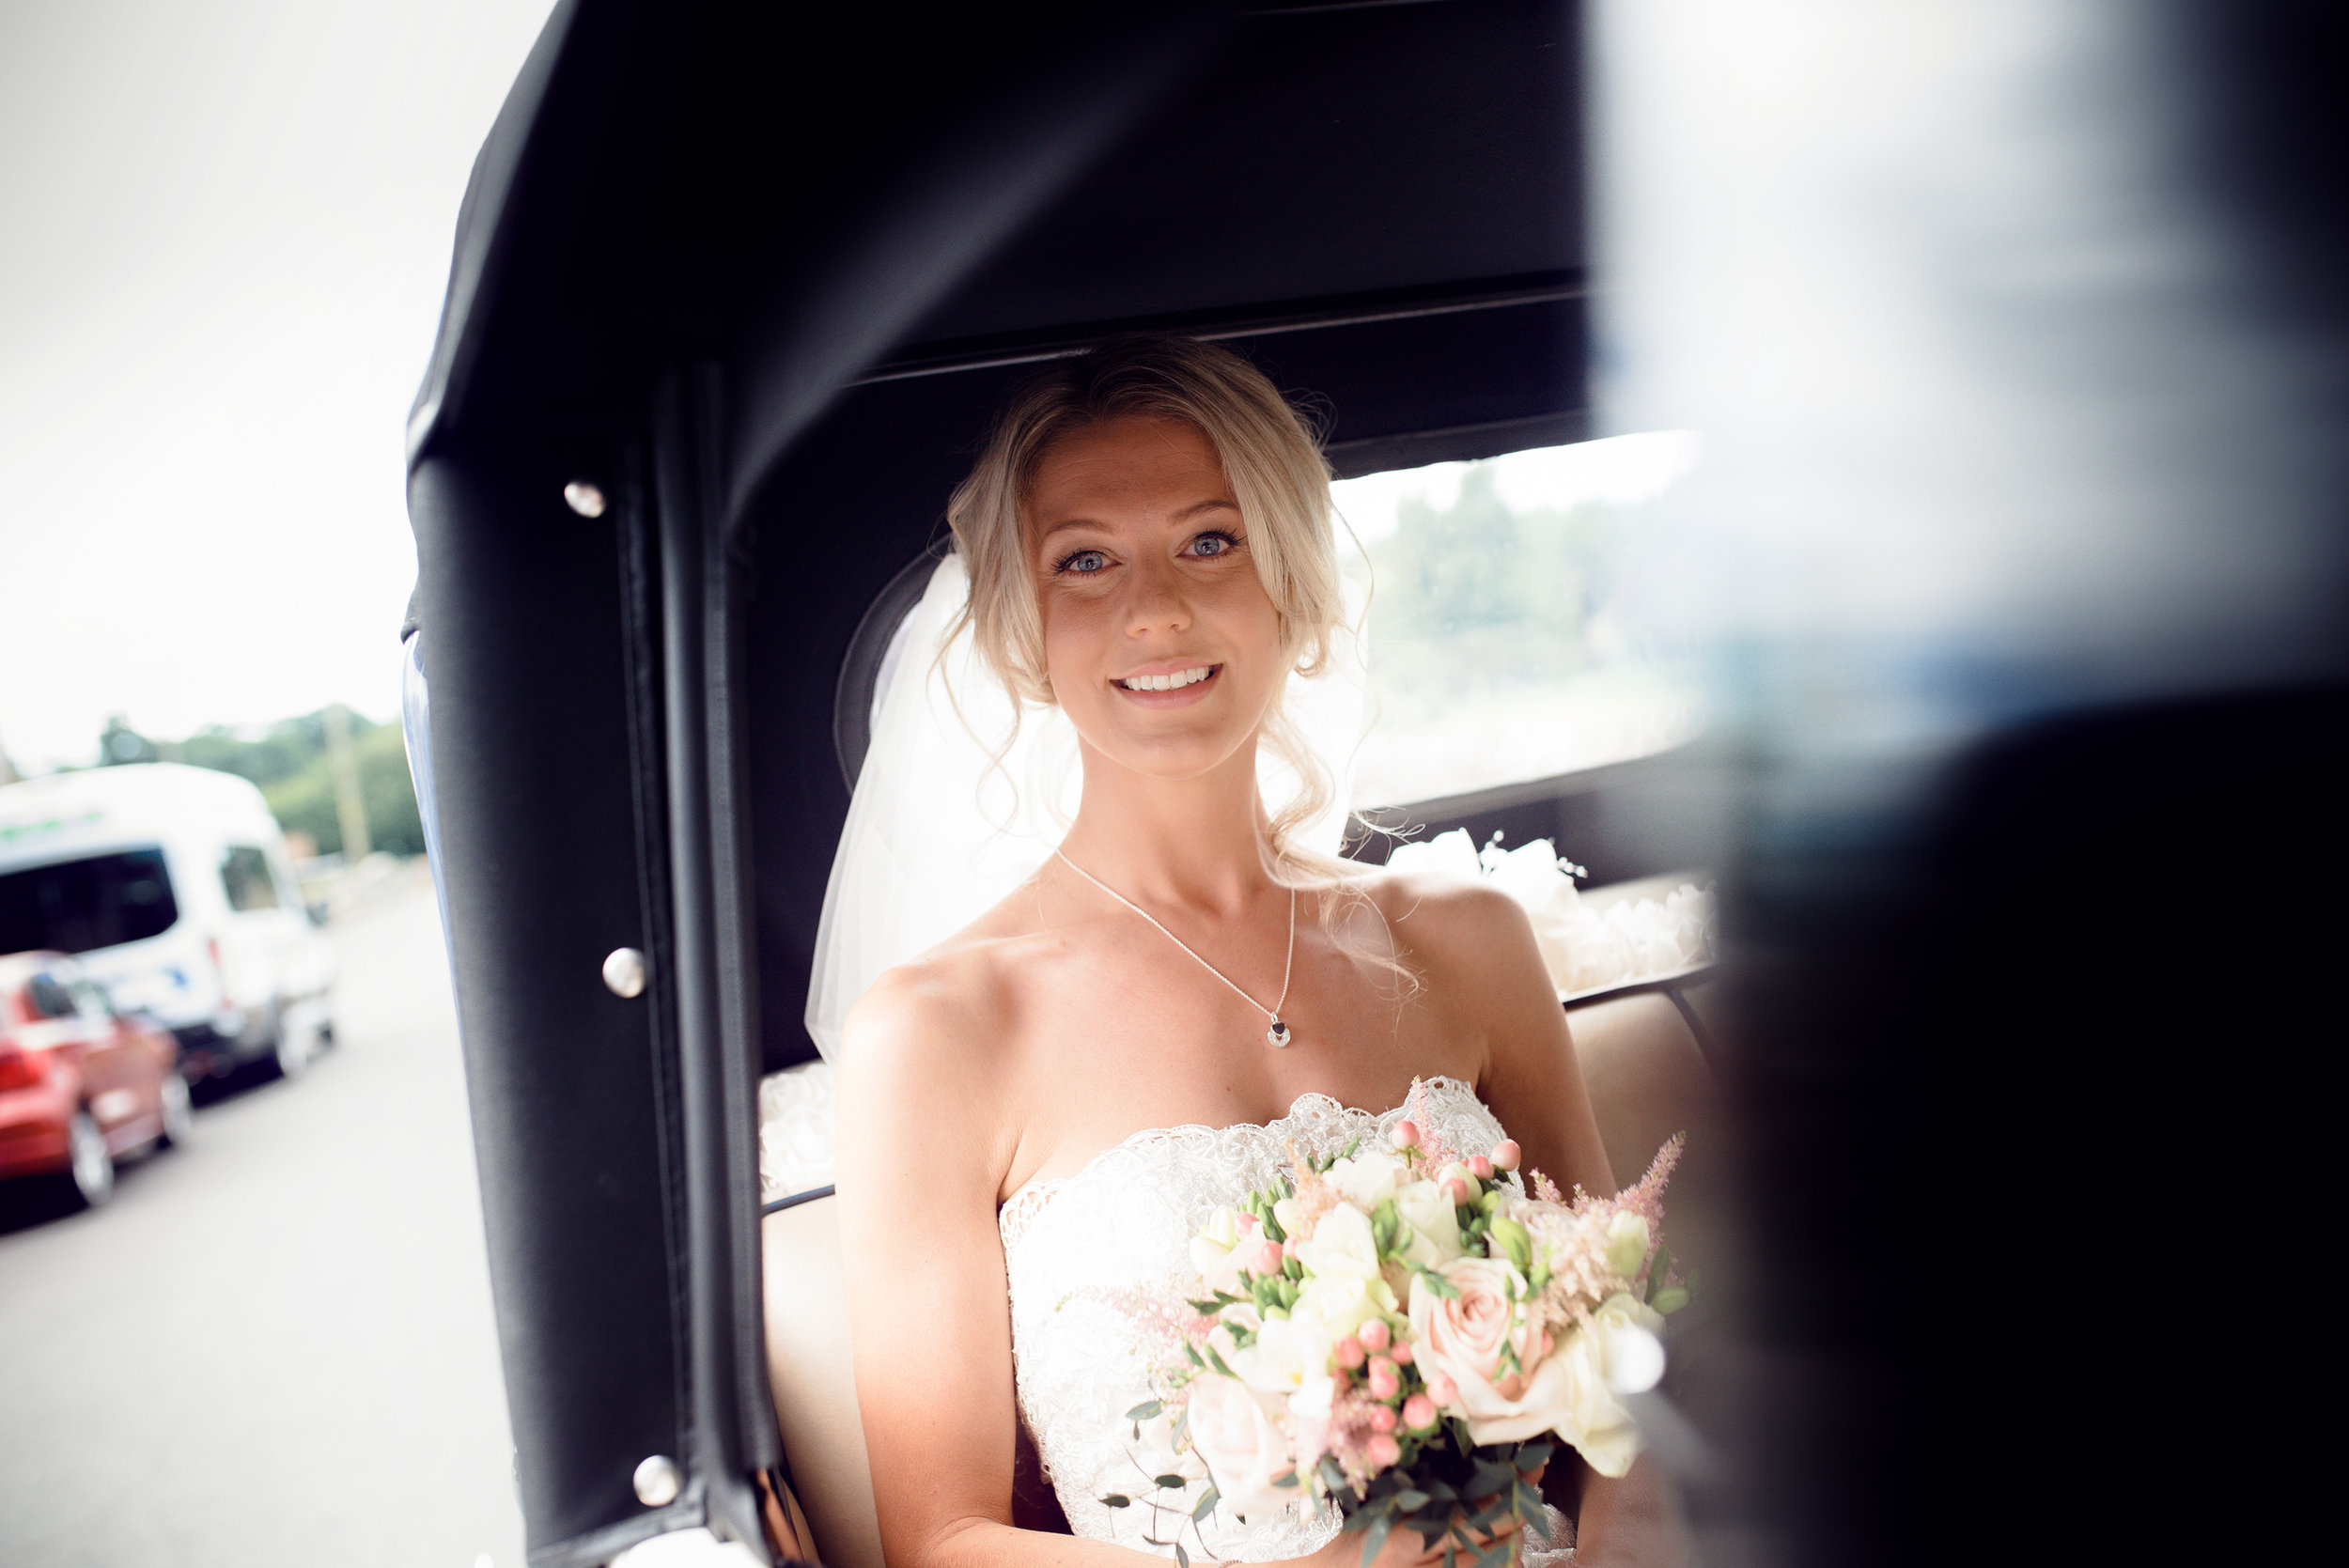 The bride sitting in the car arriving at the church